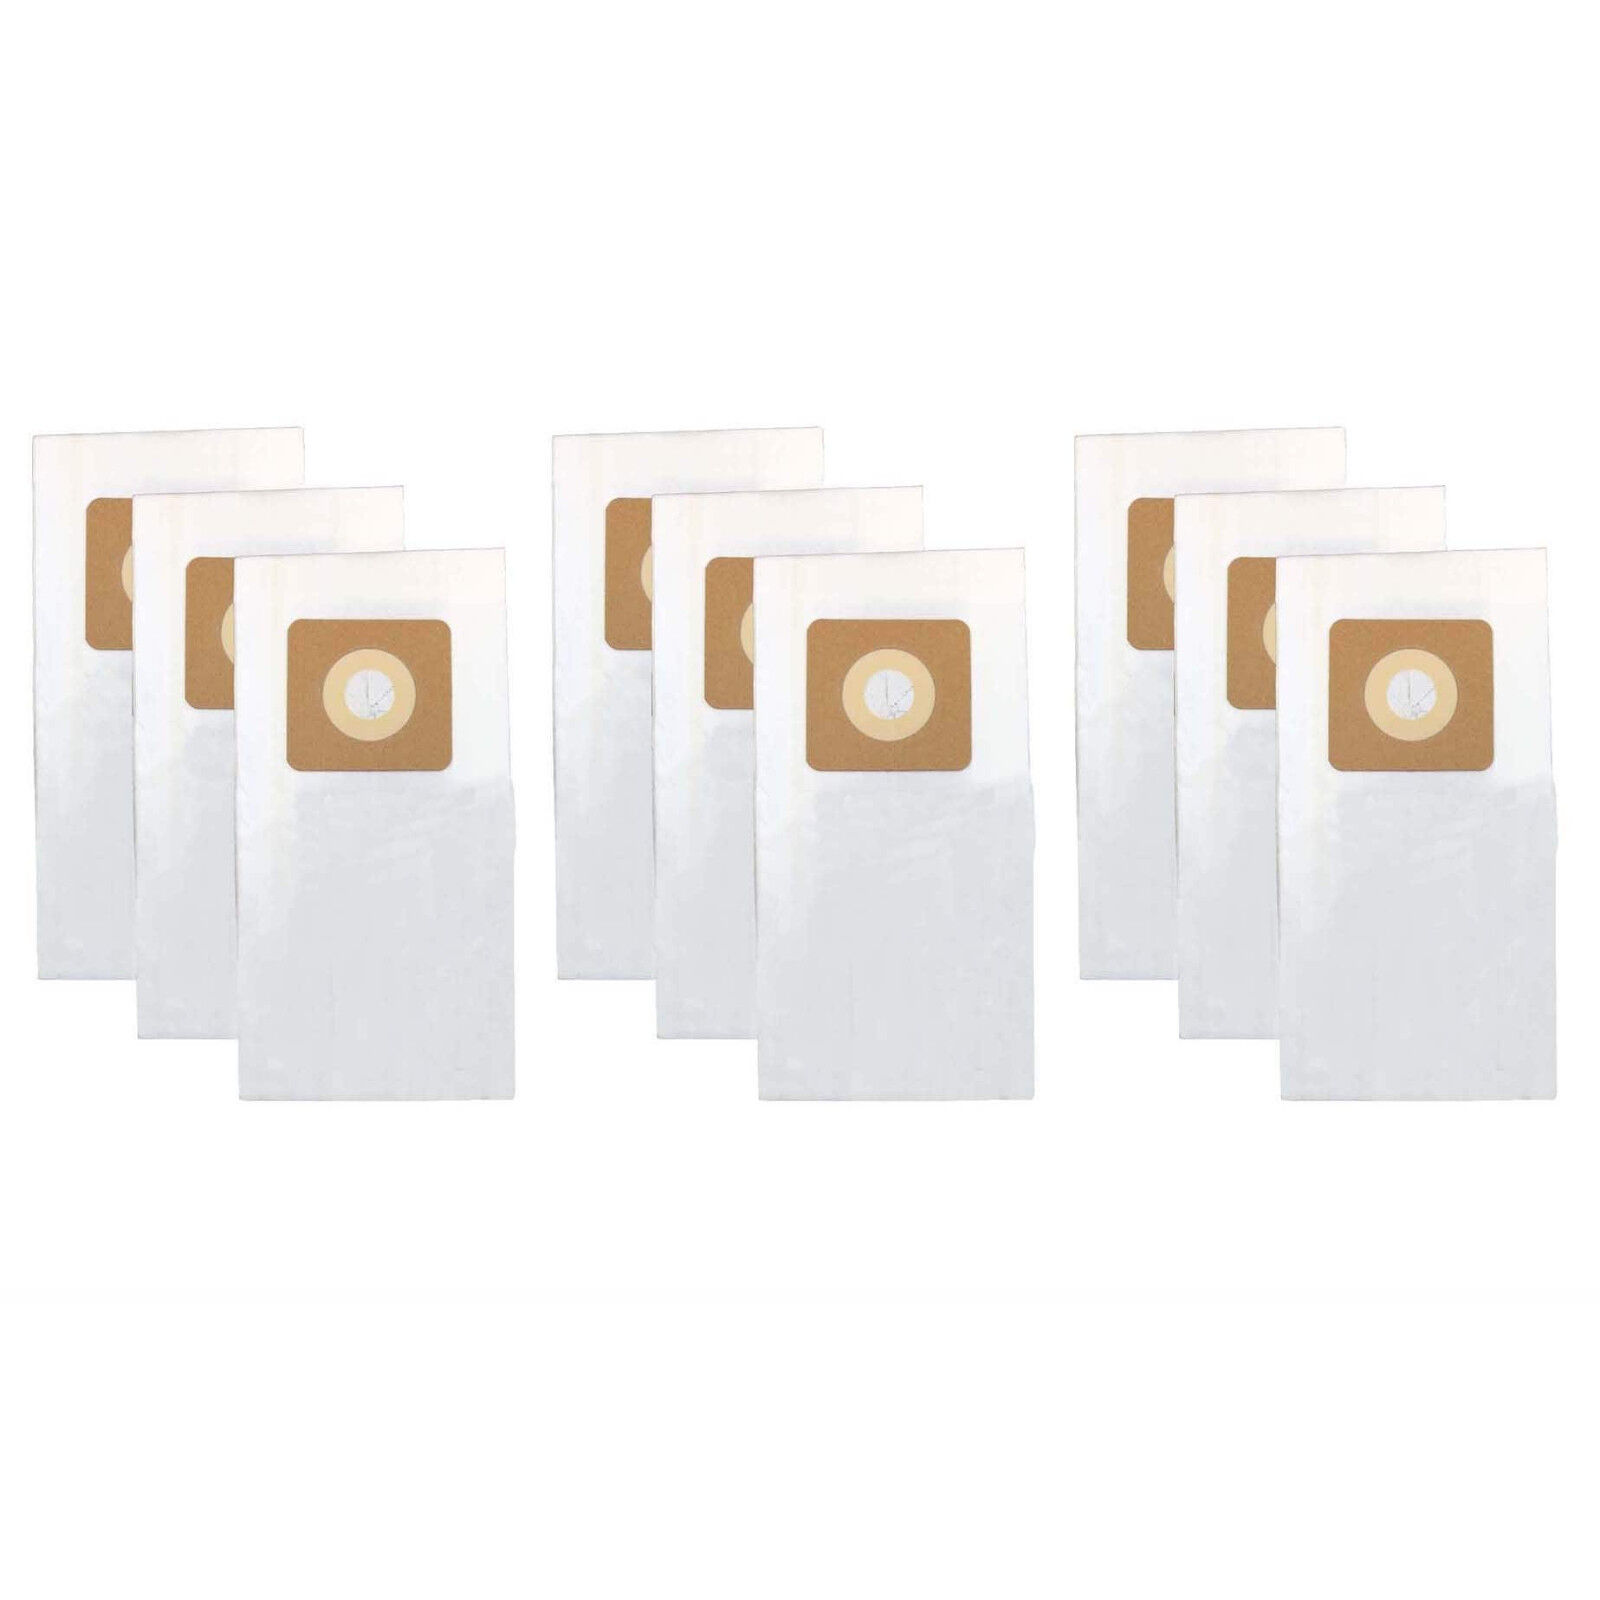 9 vacuum bags for bissell style 1